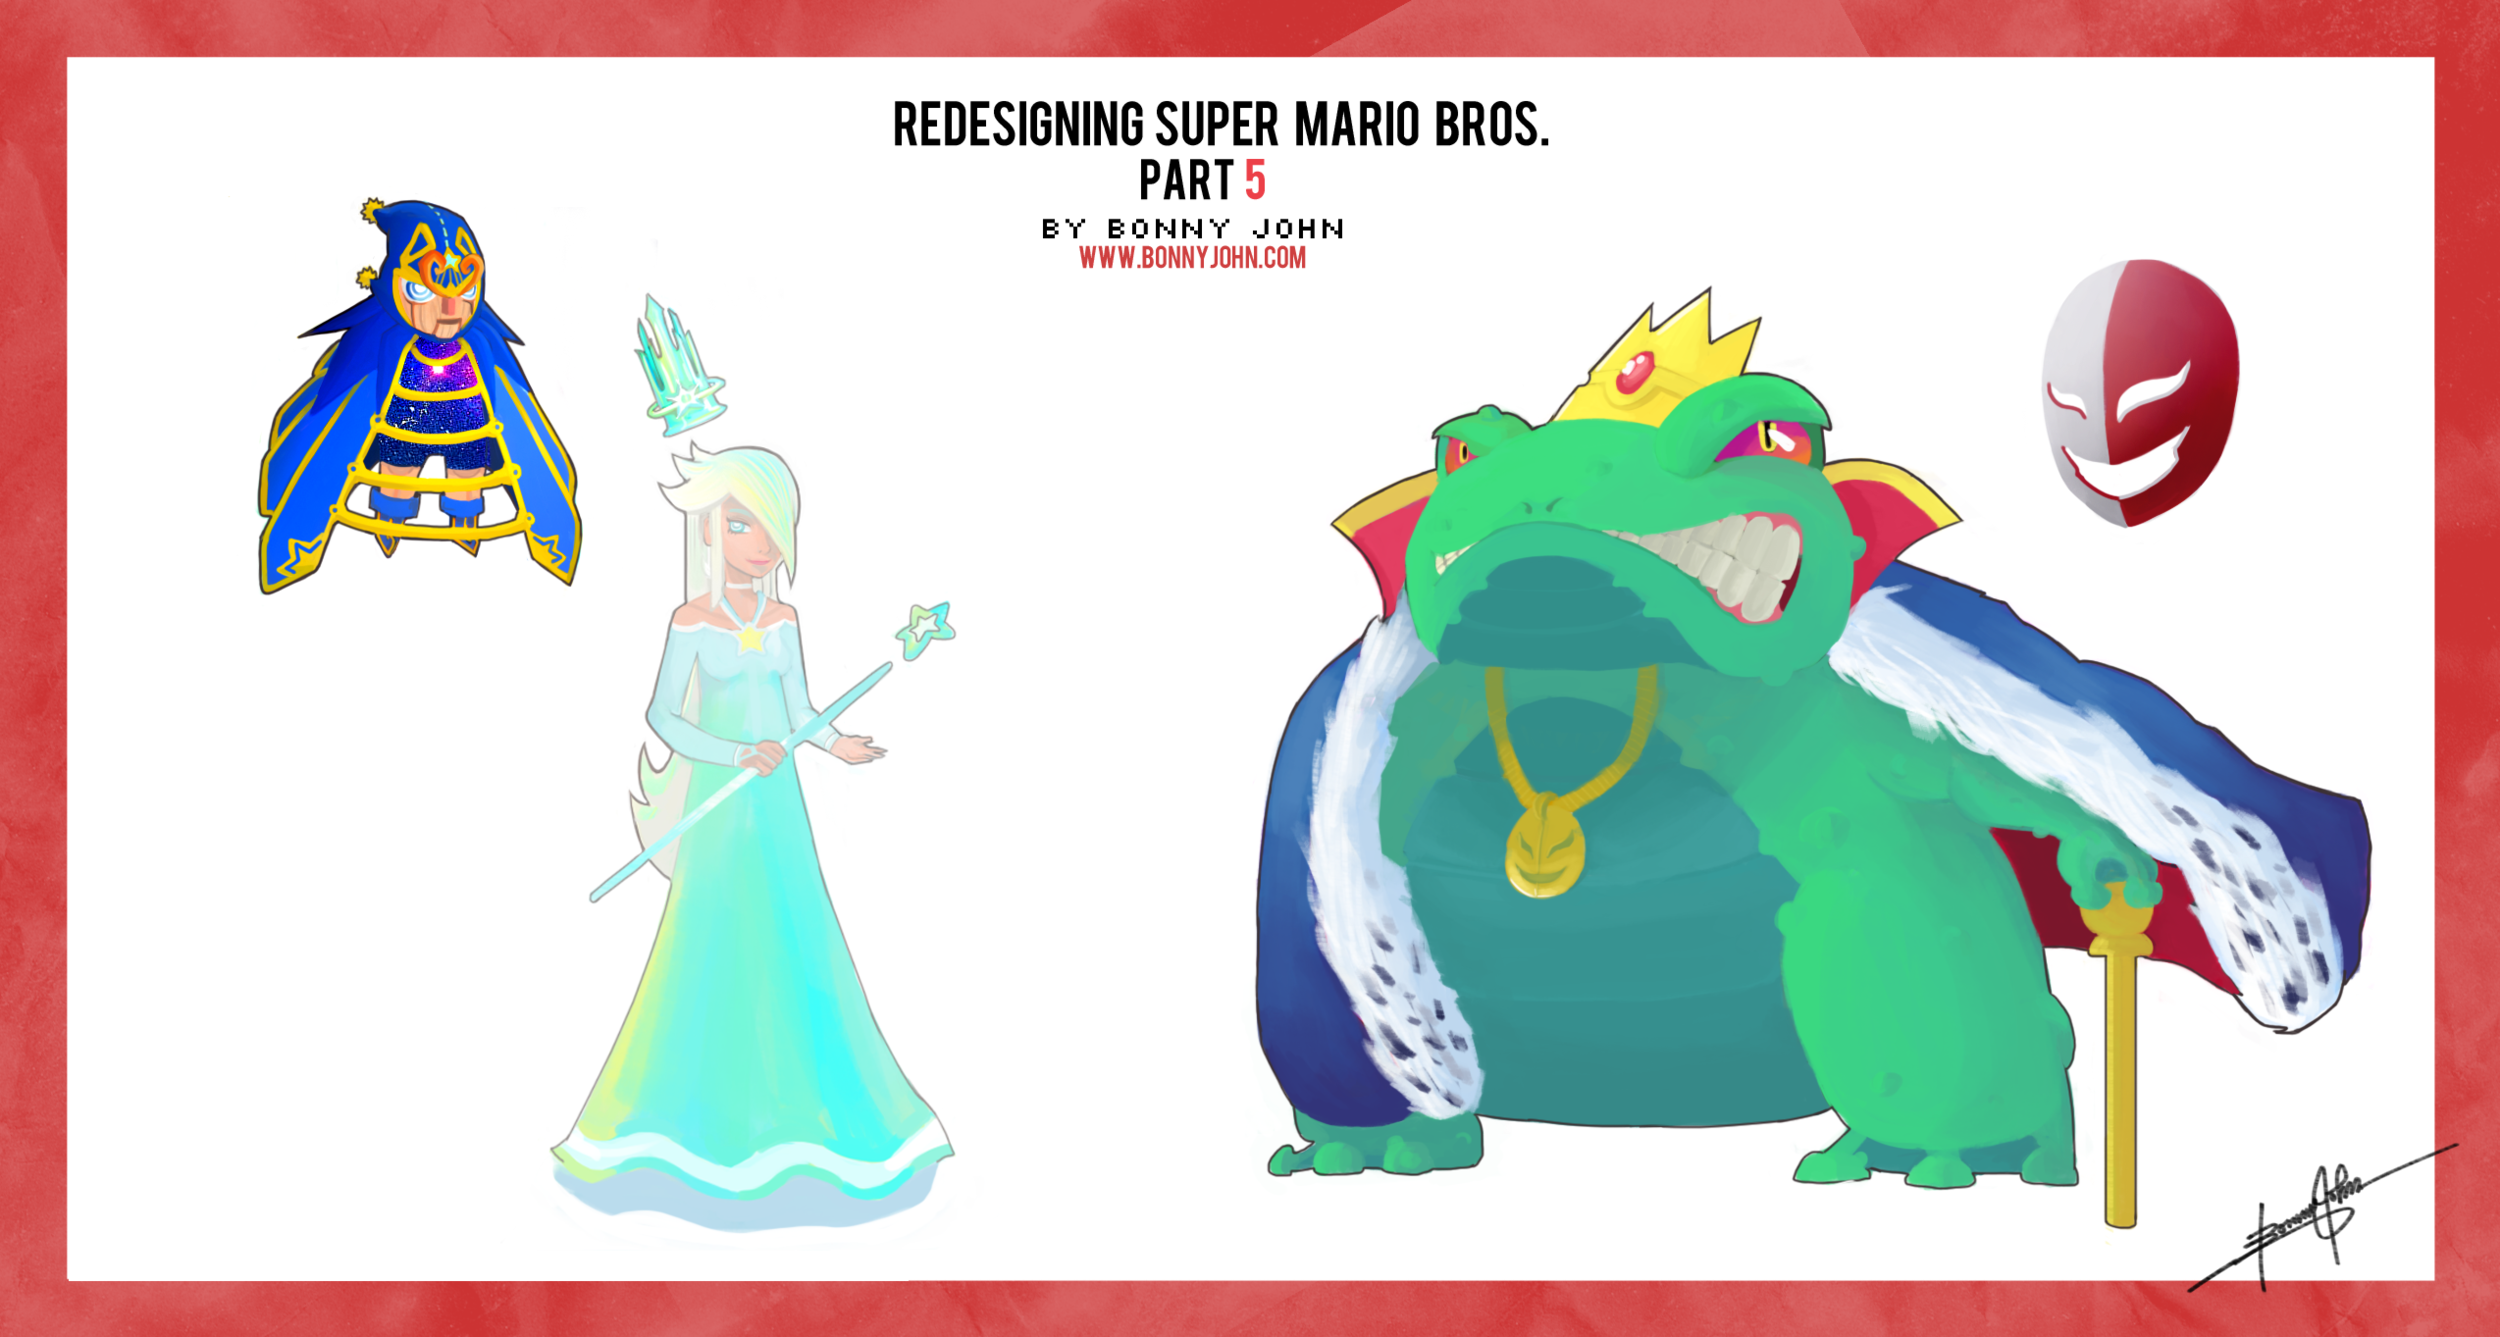 Redesigning Super Mario Part 5 by Bonny John.png